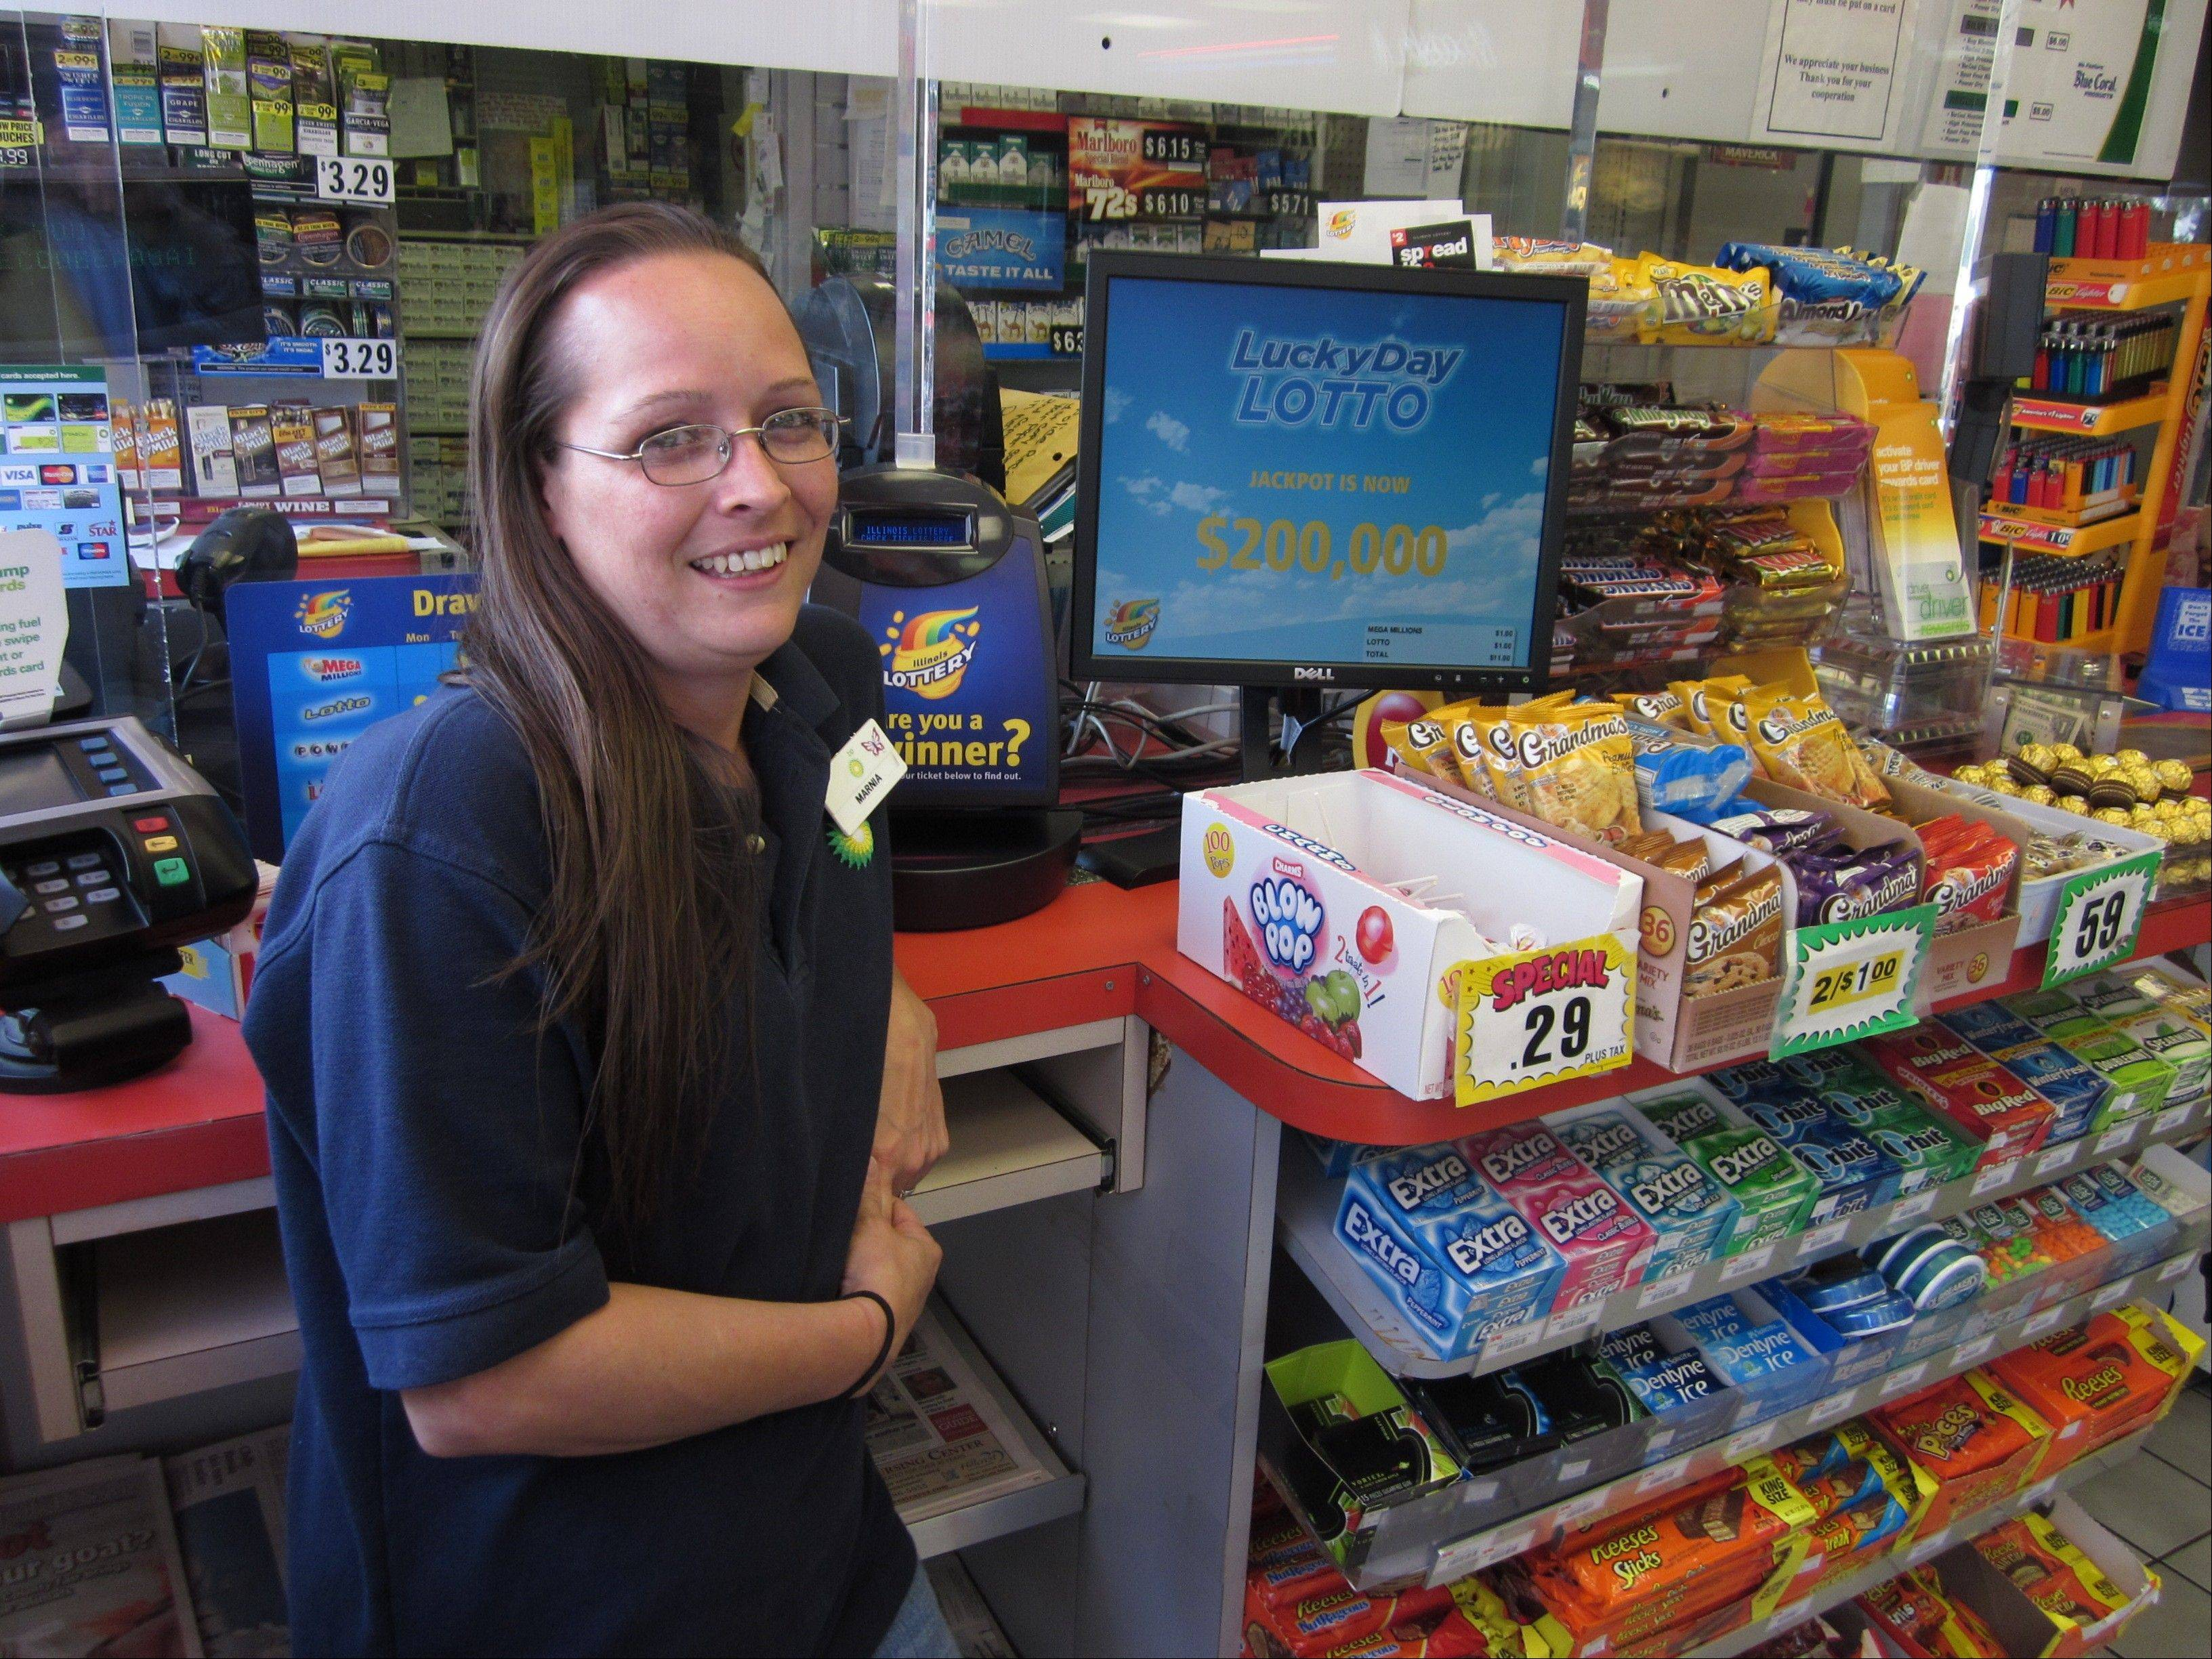 Marnia Chapai manages the Round Lake BP gasoline station where a customer purchased a winning Powerball lottery ticket worth $1 million. The Powerball numbers were drawn Wednesday night.